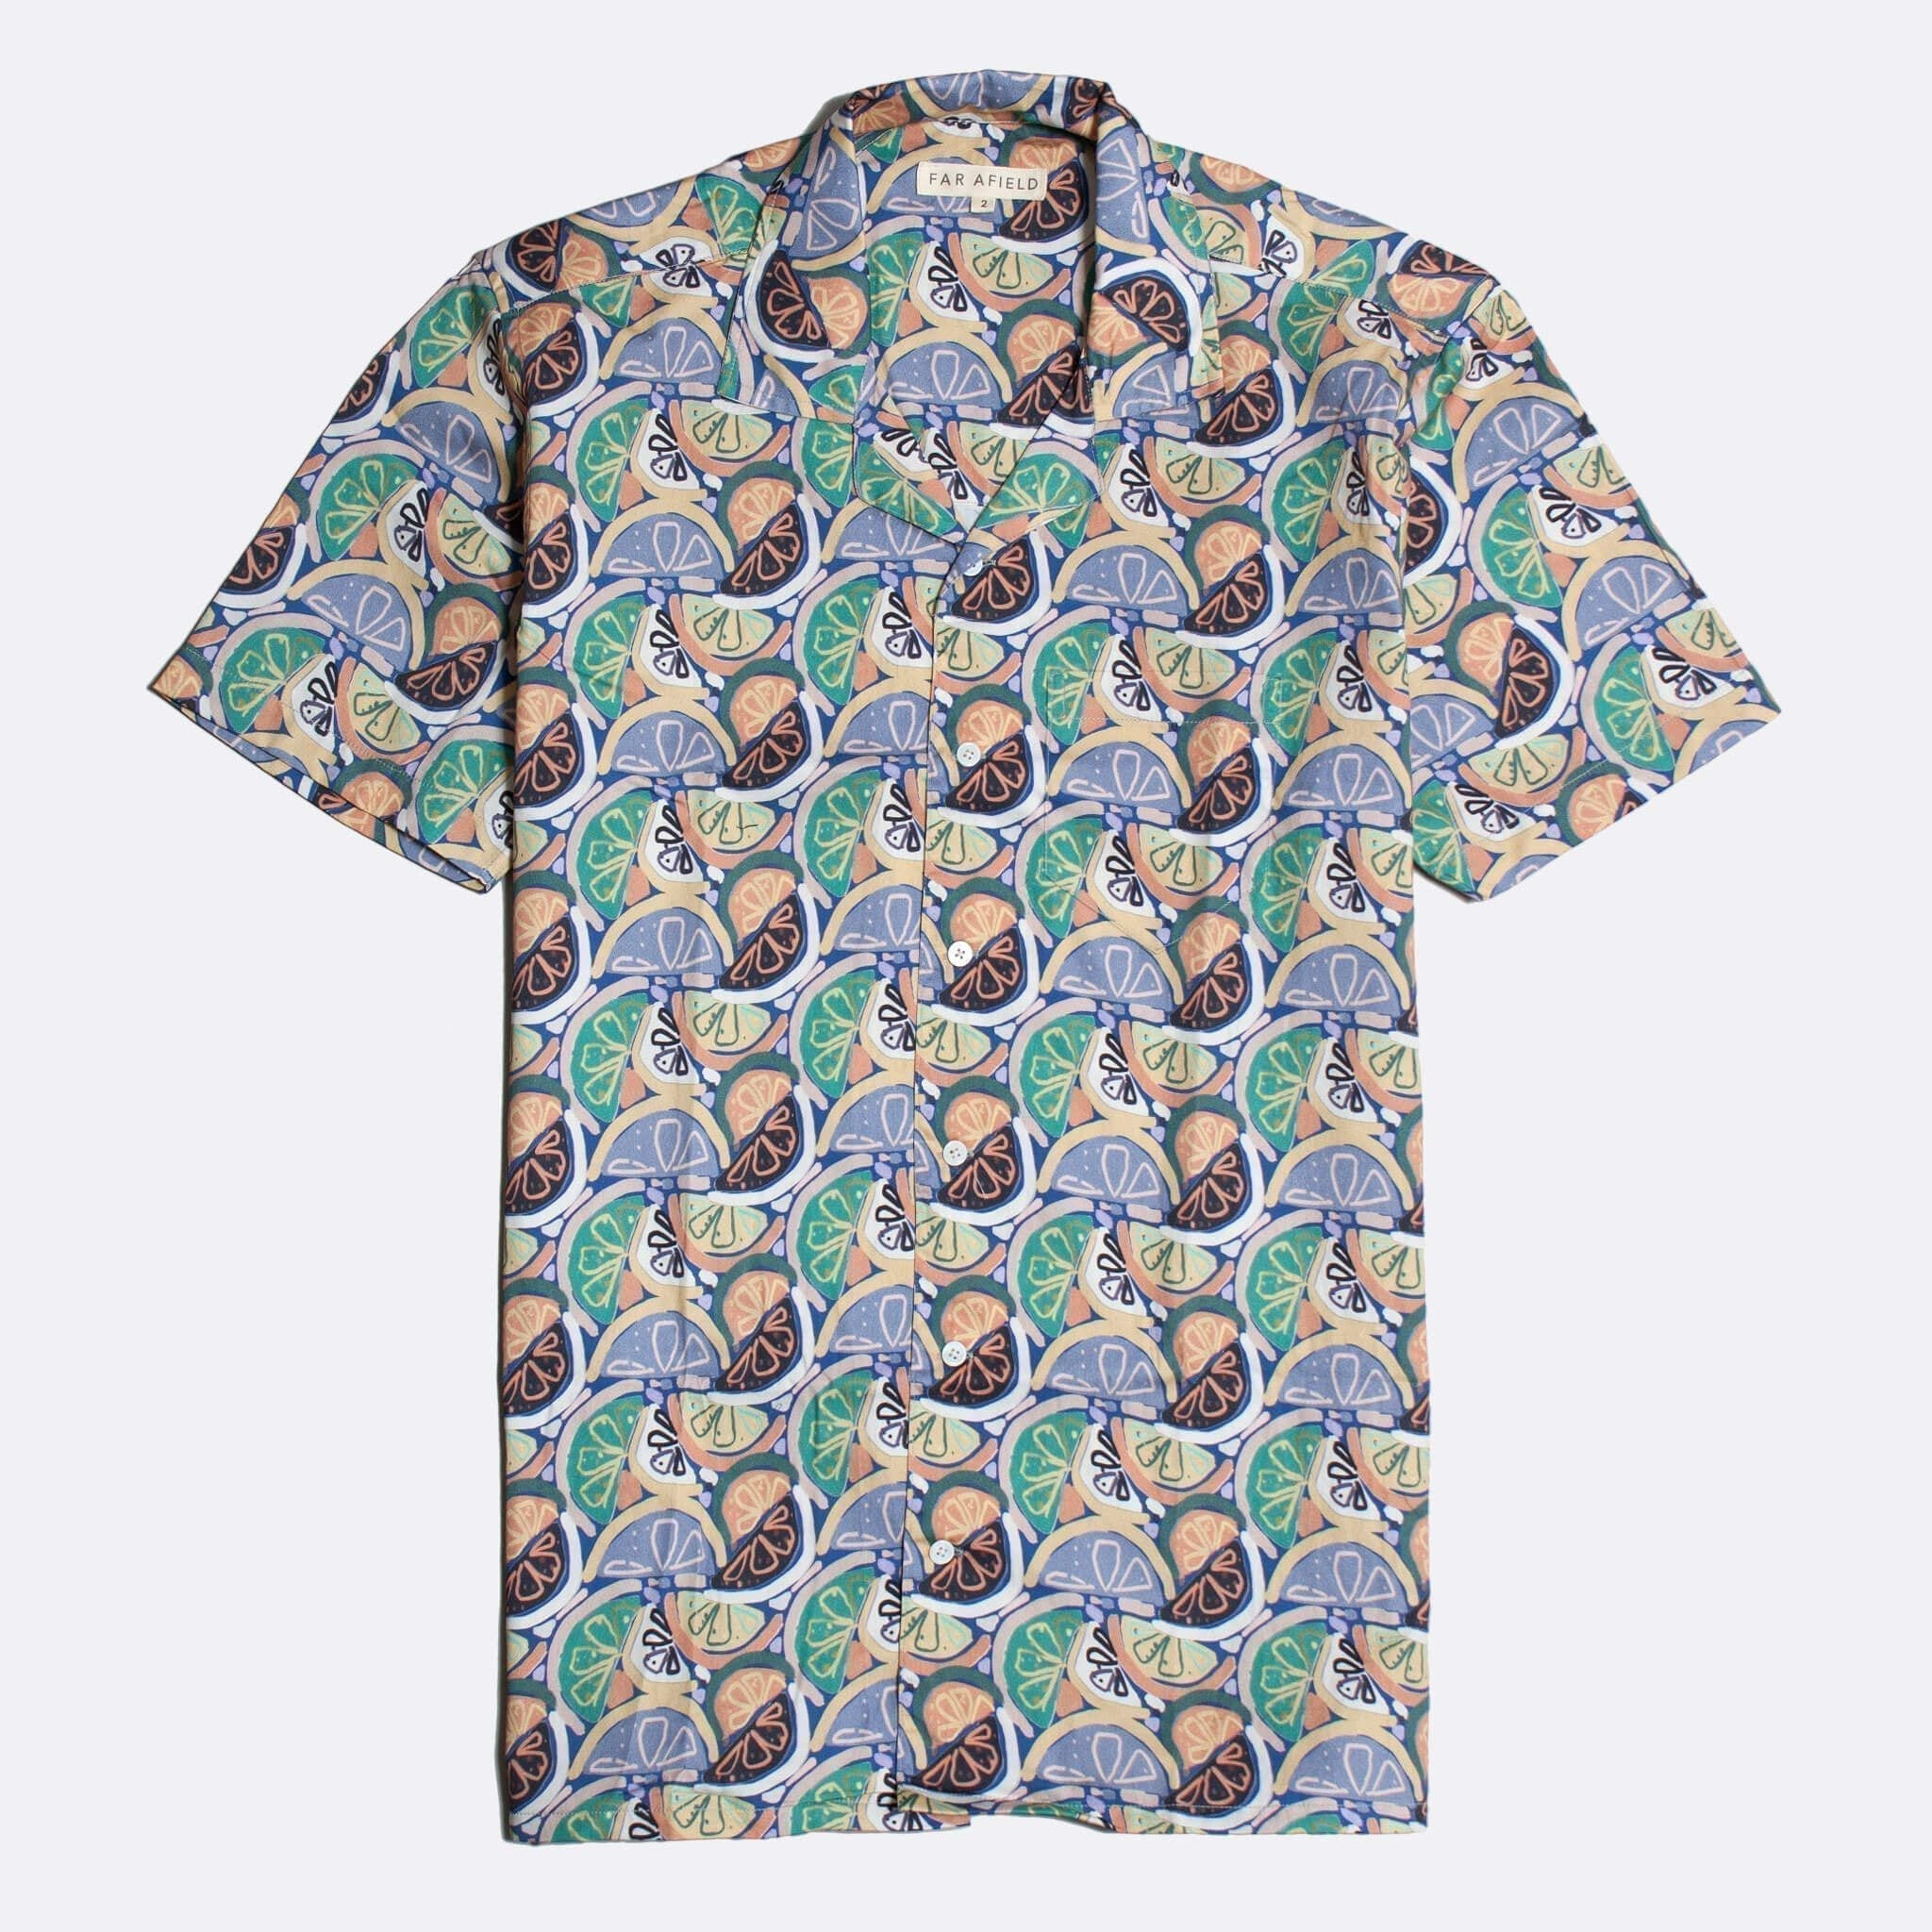 Far Afield Stachio Short Sleeve Shirt a Multi Colour BCI Cotton Fabric Hawaiian Bowling Style Smart Casual